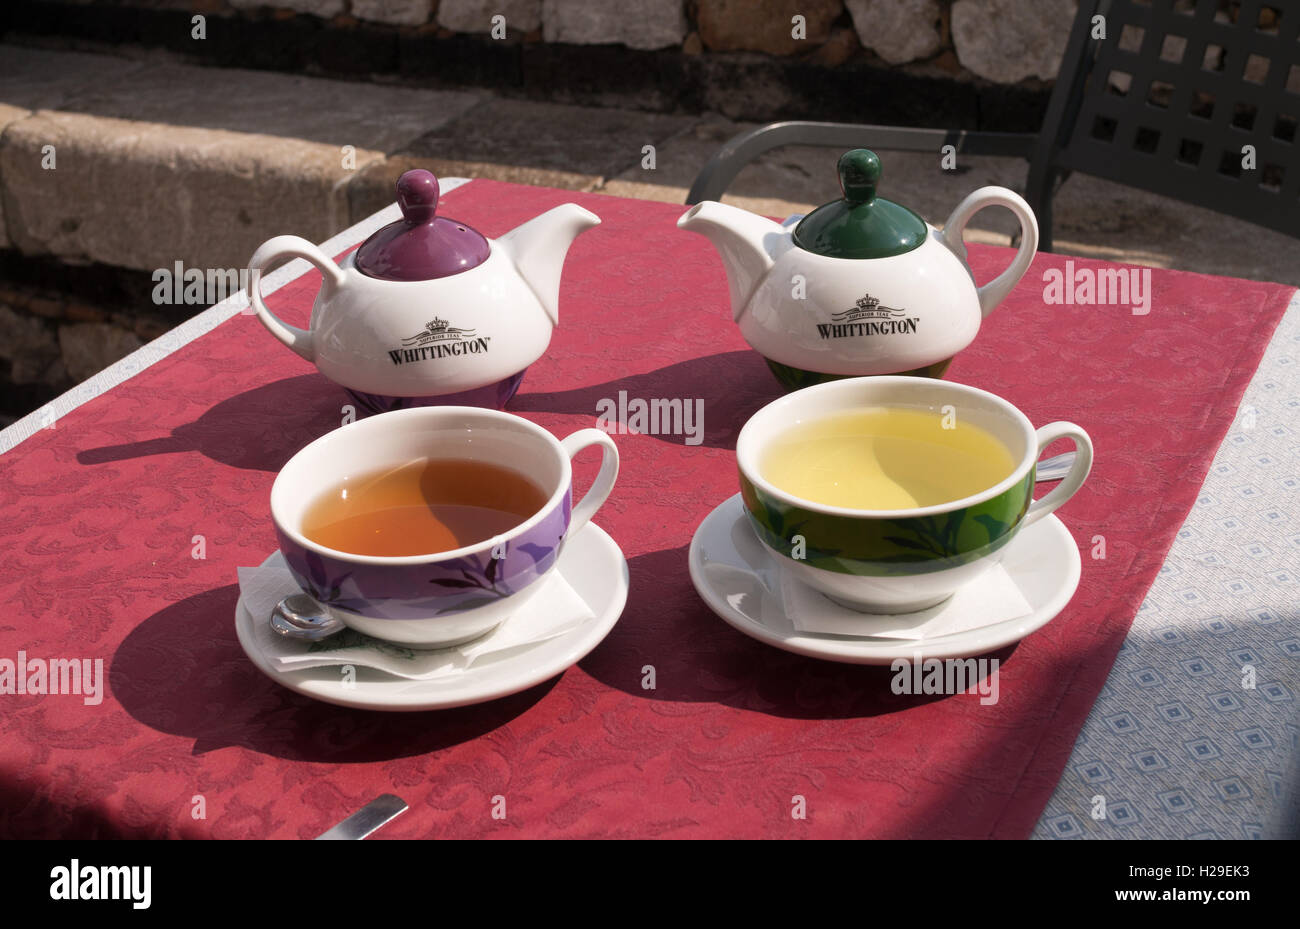 Tea for two,  Whittington teapots and matching cups and saucers, Castelmola, Sicily , Italy, Europe - Stock Image